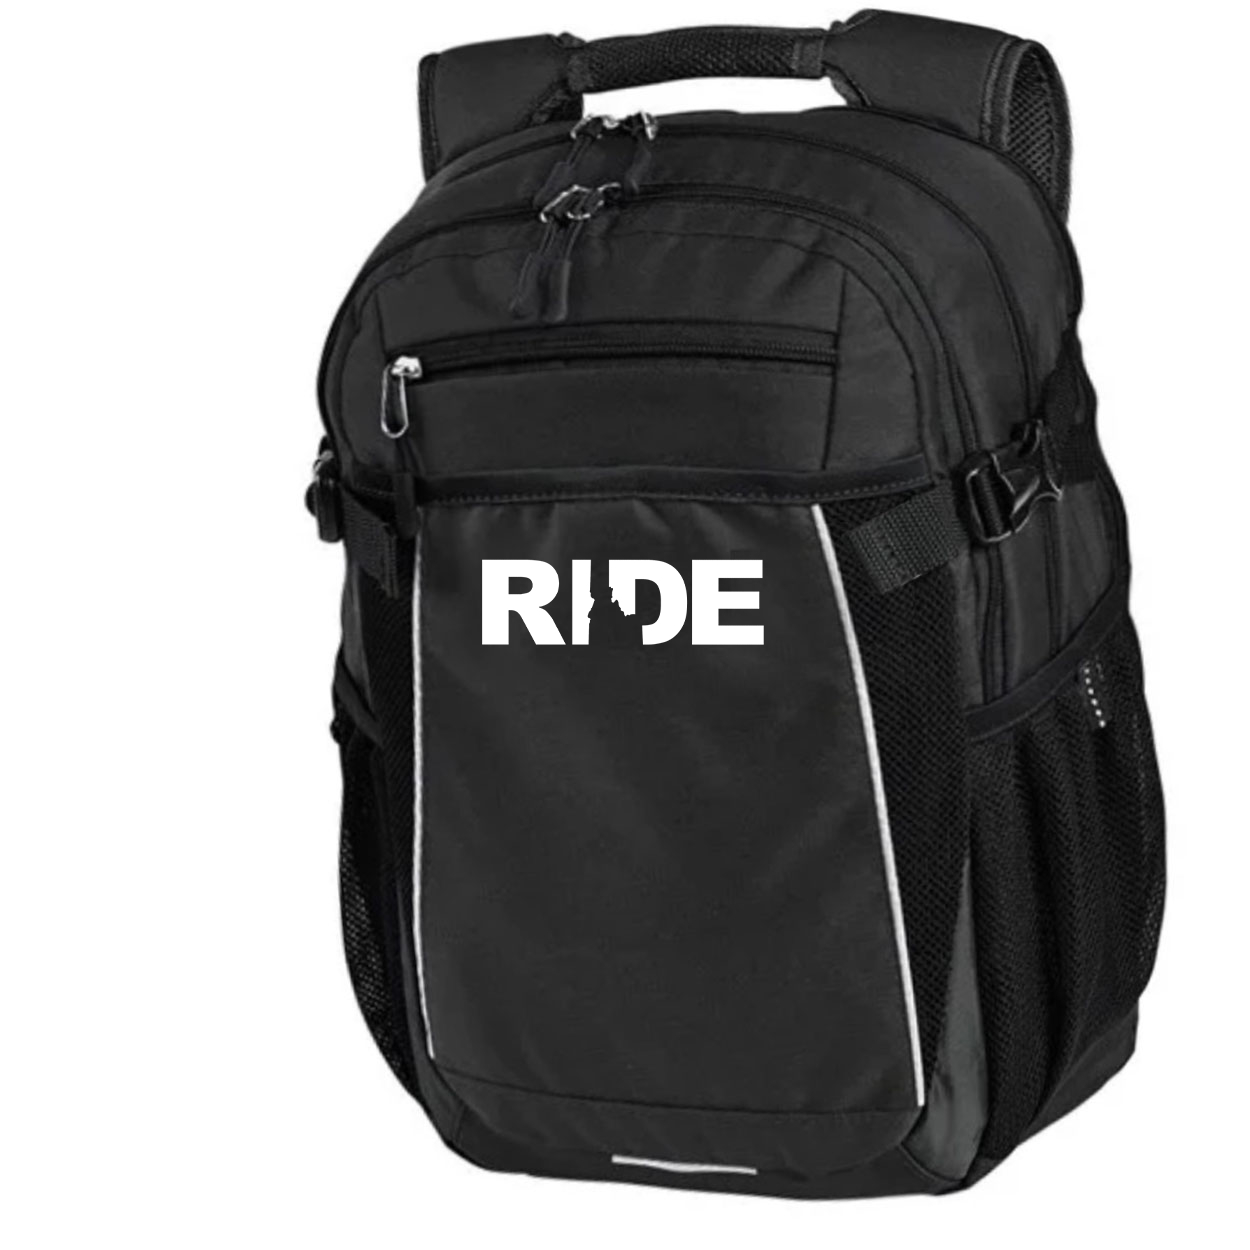 Ride Idaho Classic Pro Pioneer Backpack Black (White Logo)